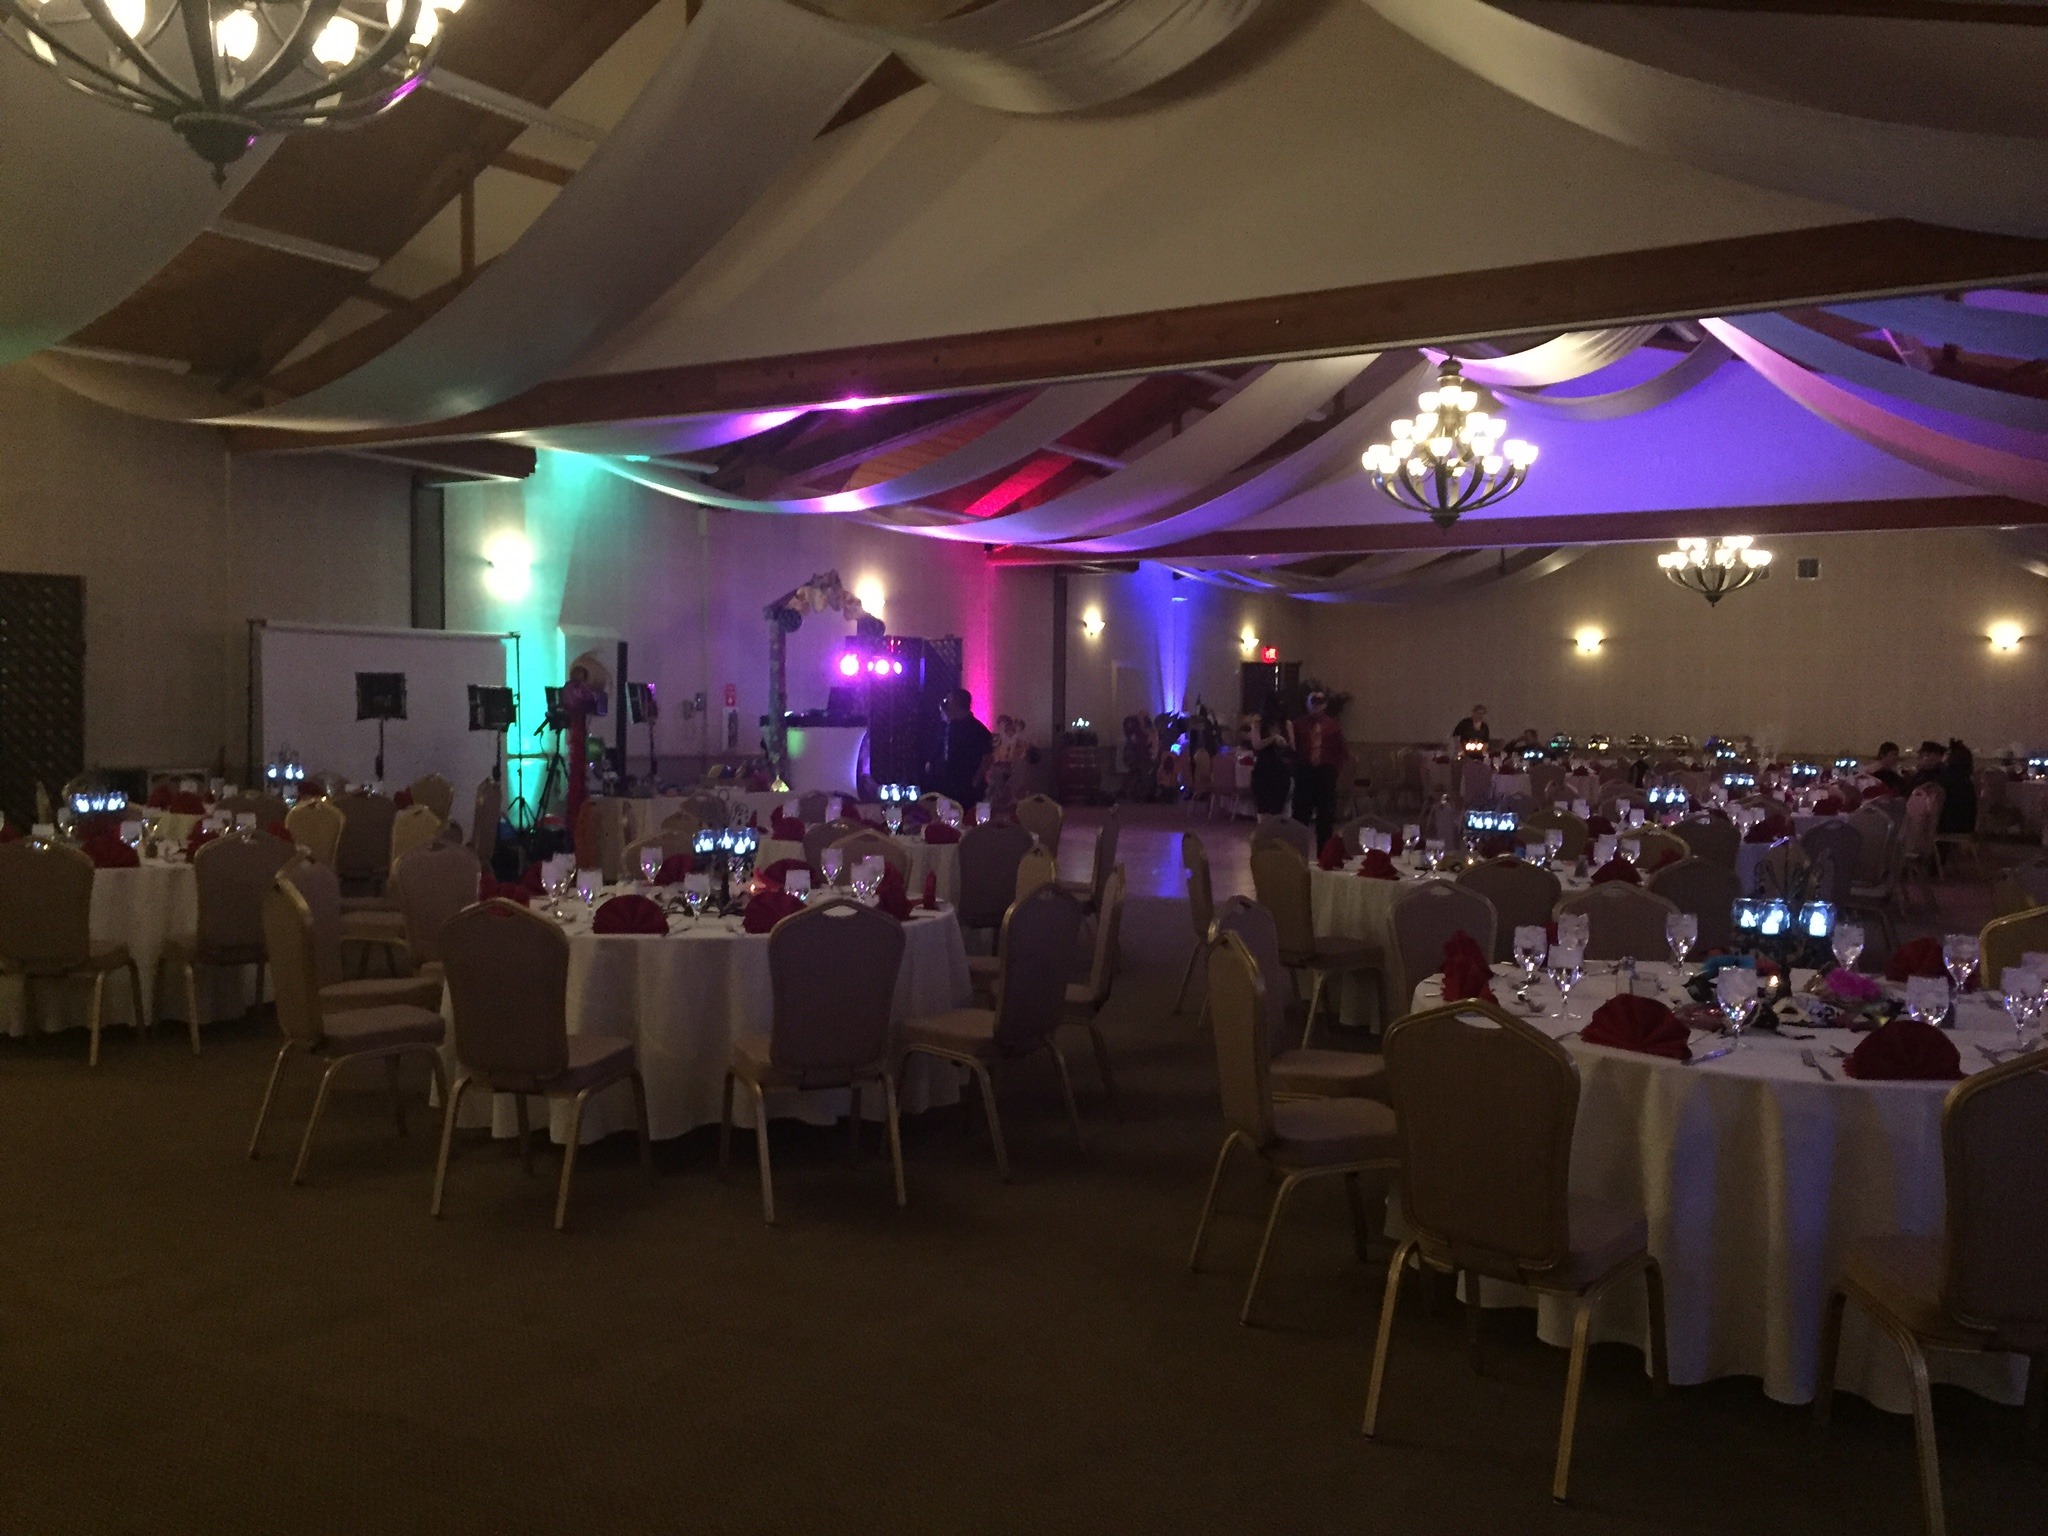 Uplighting for the South Coast Winery ballroom was provided by DJ Kanoya. The fixtures used are the American DJ Mega Tri Par Profile Plus.